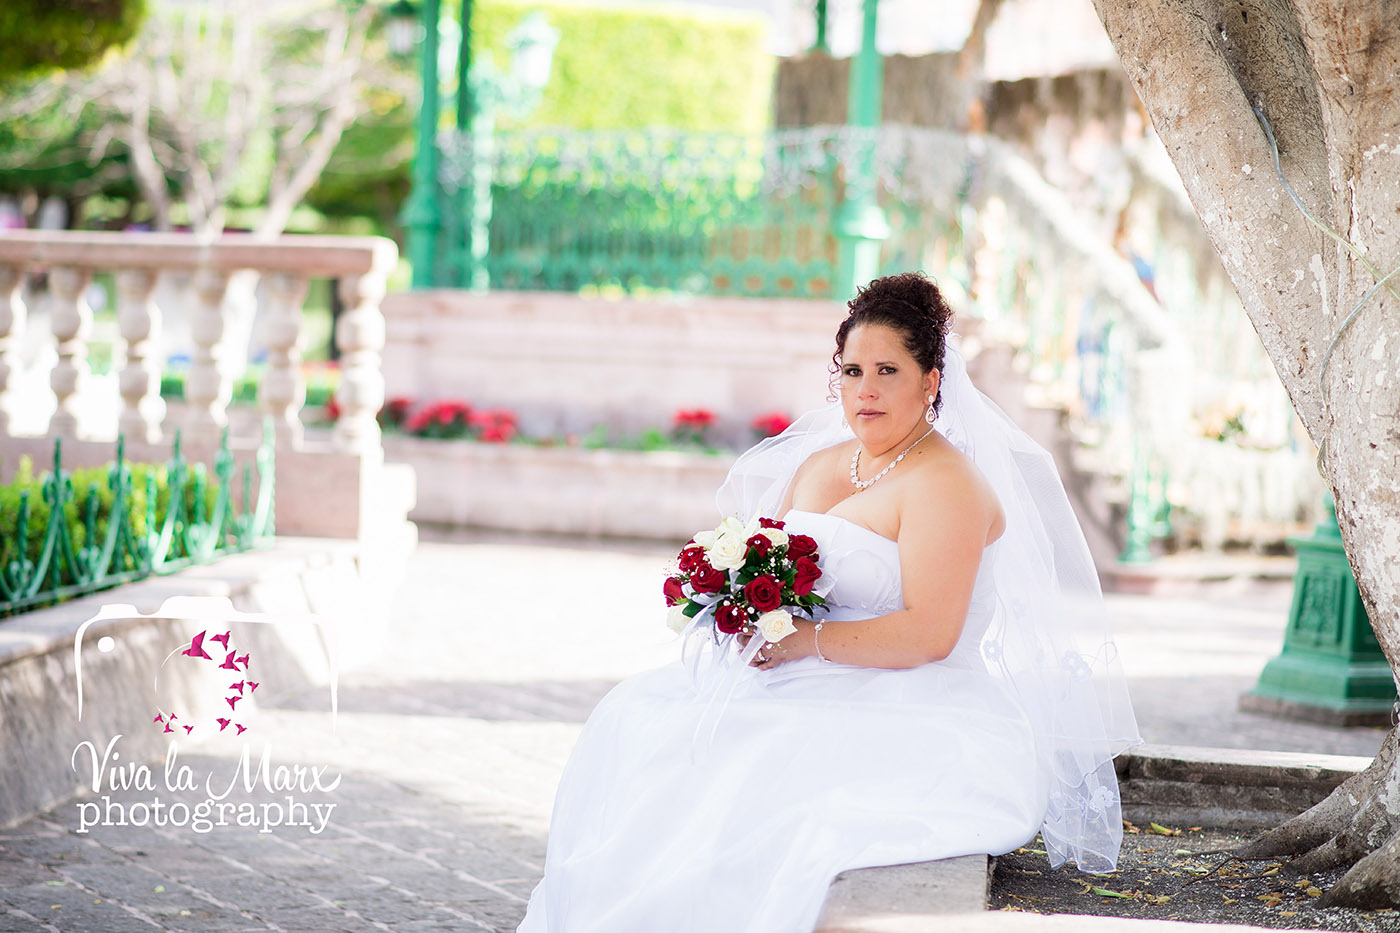 Catalina, posing on her wedding day. Catalina got to marry in her hometown of Santiago Maravatio, Guanajuato, she is originally from a town up in the mountain nearby, but this is the town that saw her grow up into an adult. Your wedding should describe you, with every detail you put into it.